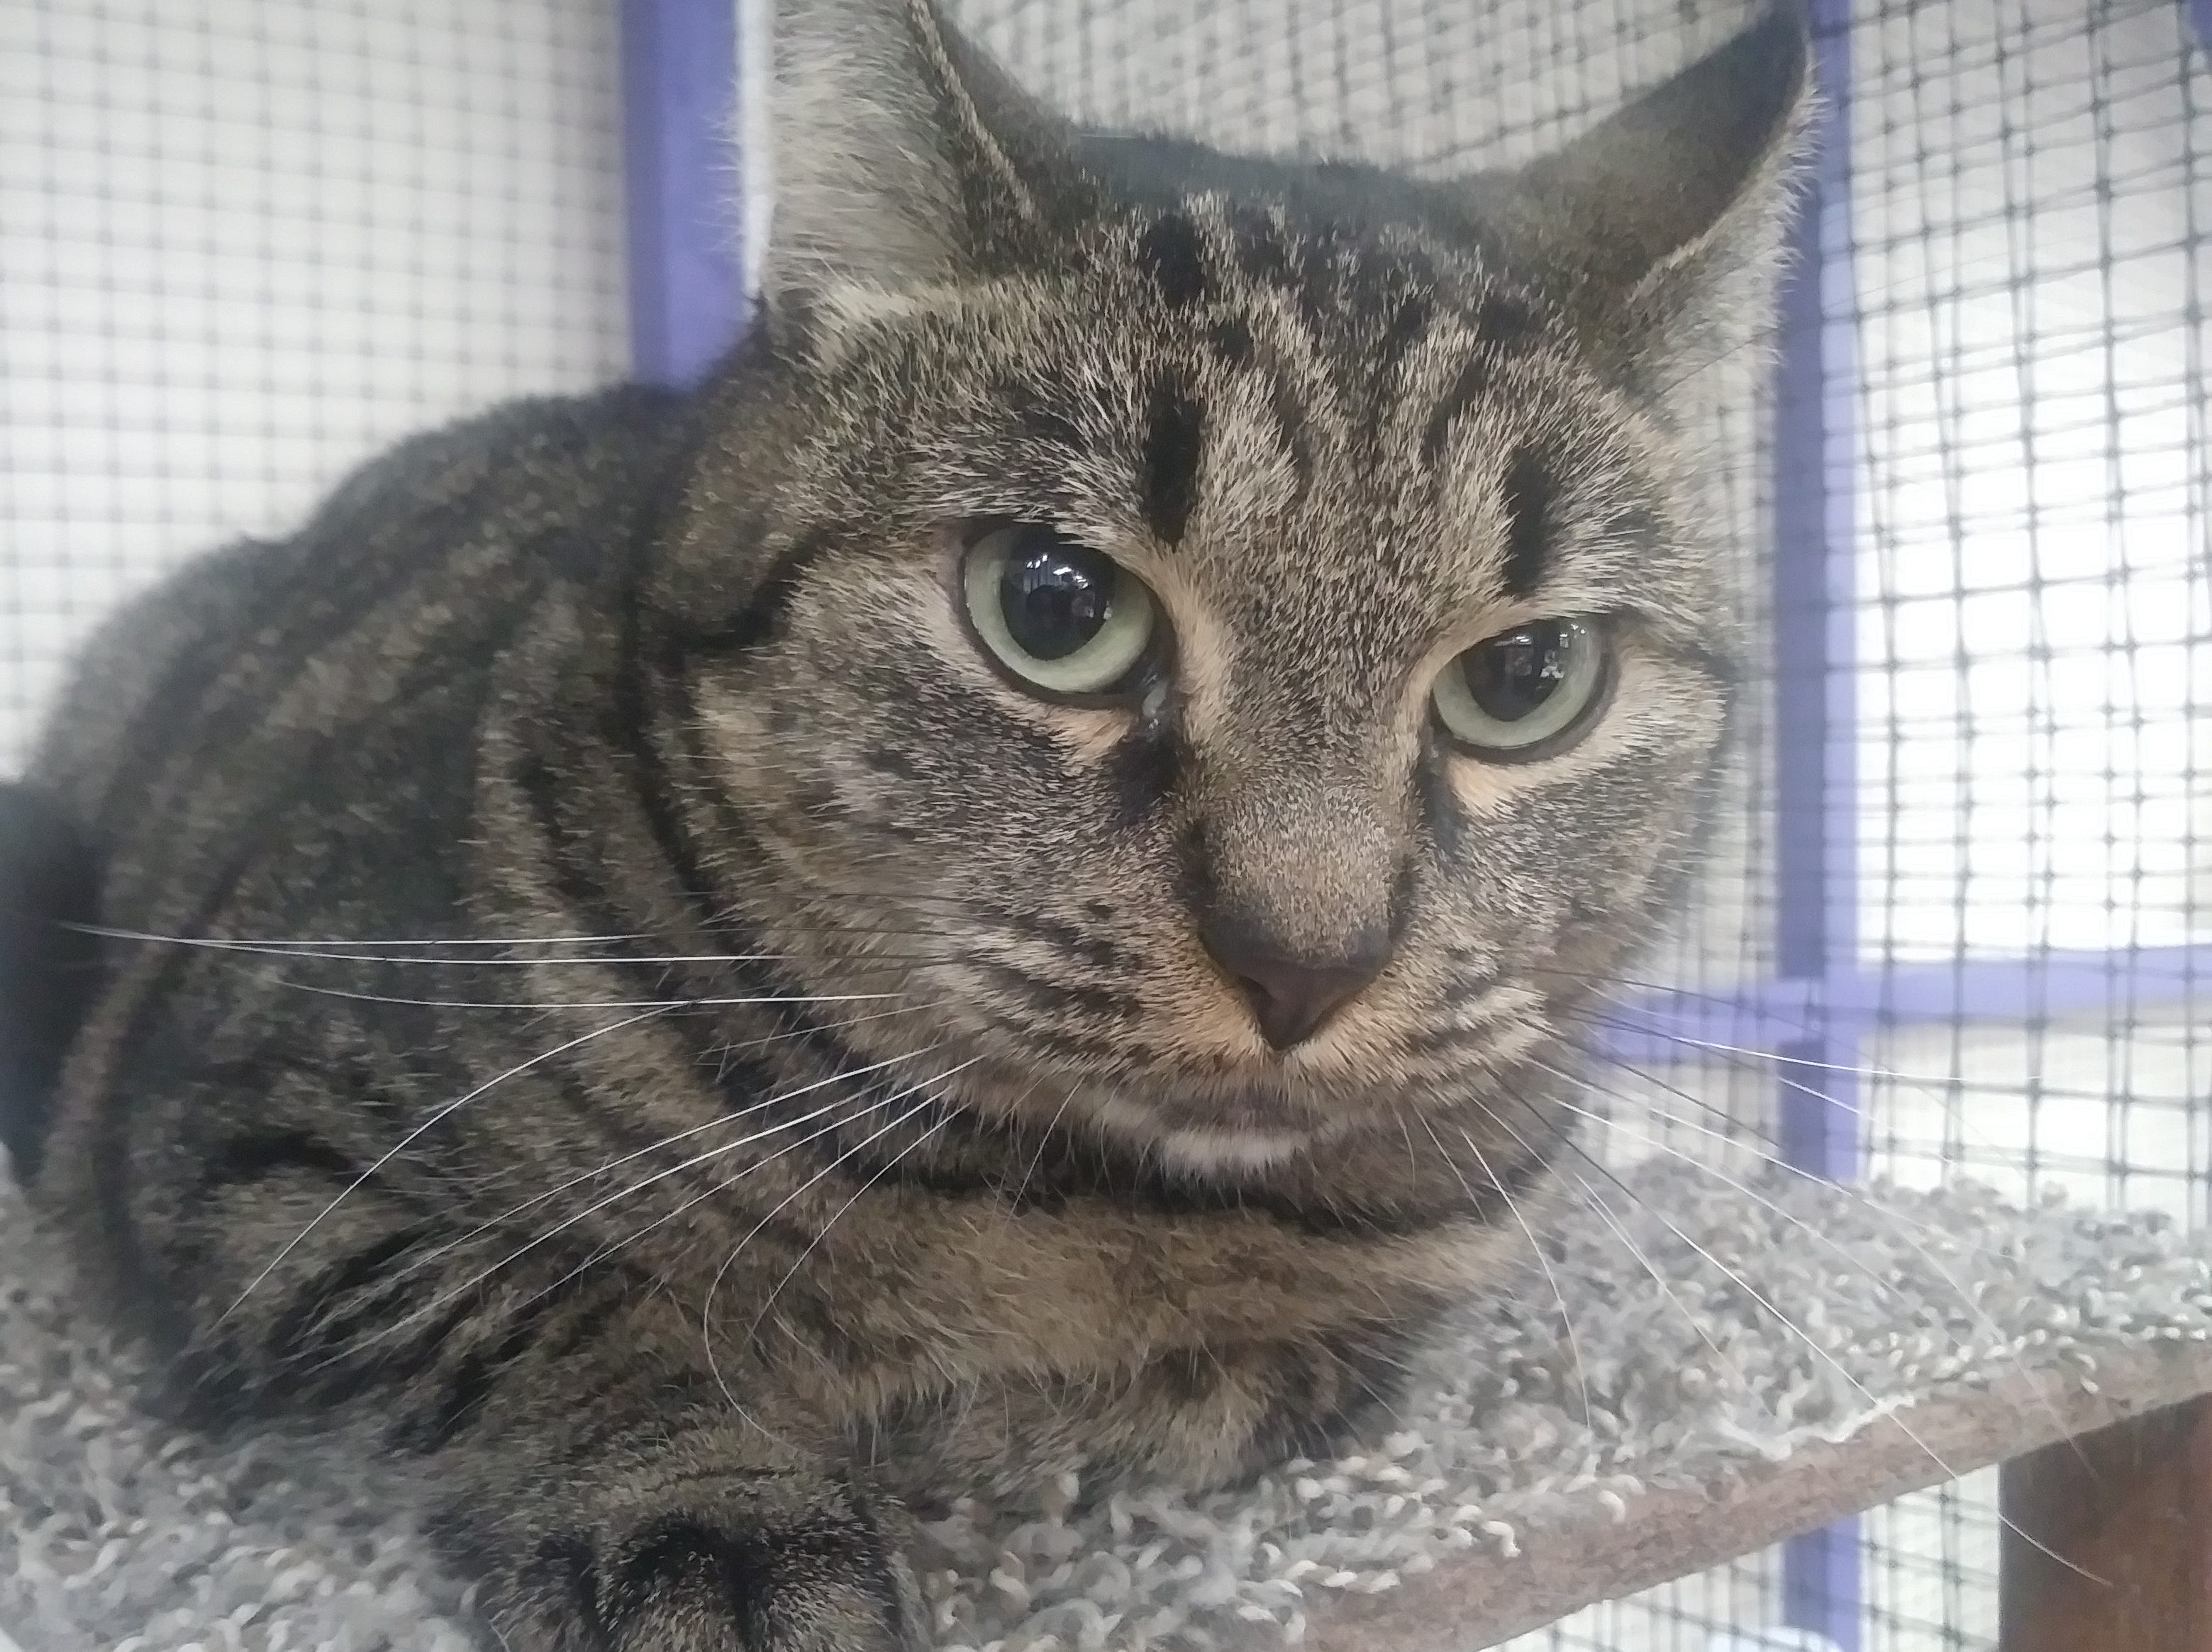 Misty Meadows is a young, female, brown tabby kitty. She is 18 months old, and ready for adoption. Email Spay Neuter and Protect at Snap.spayneuterandprotect@gmail.com. Call 209-6966.